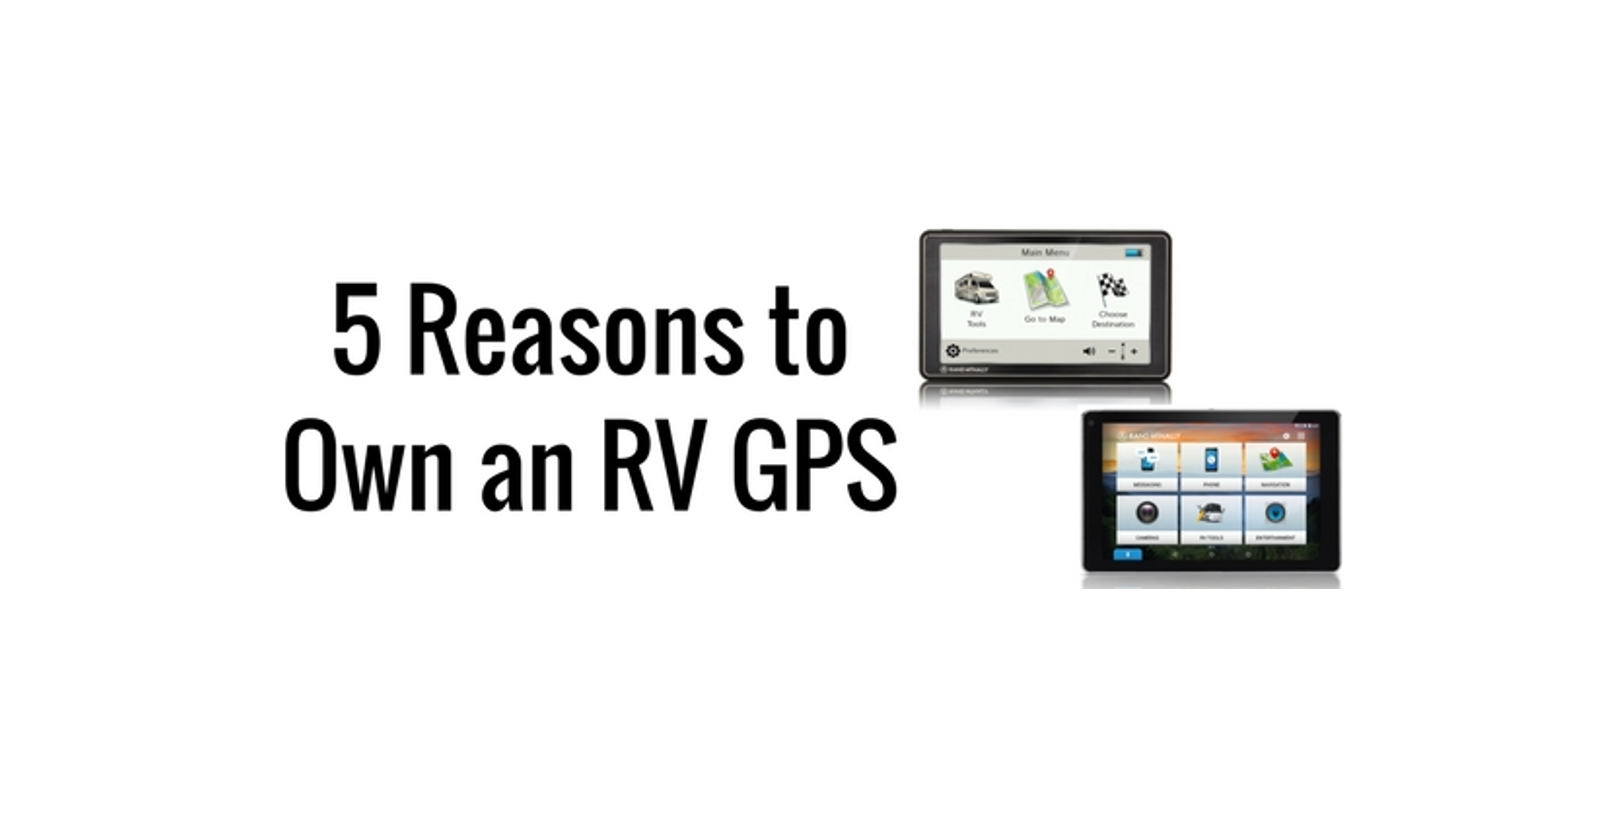 5 Reasons to Own an RV GPS